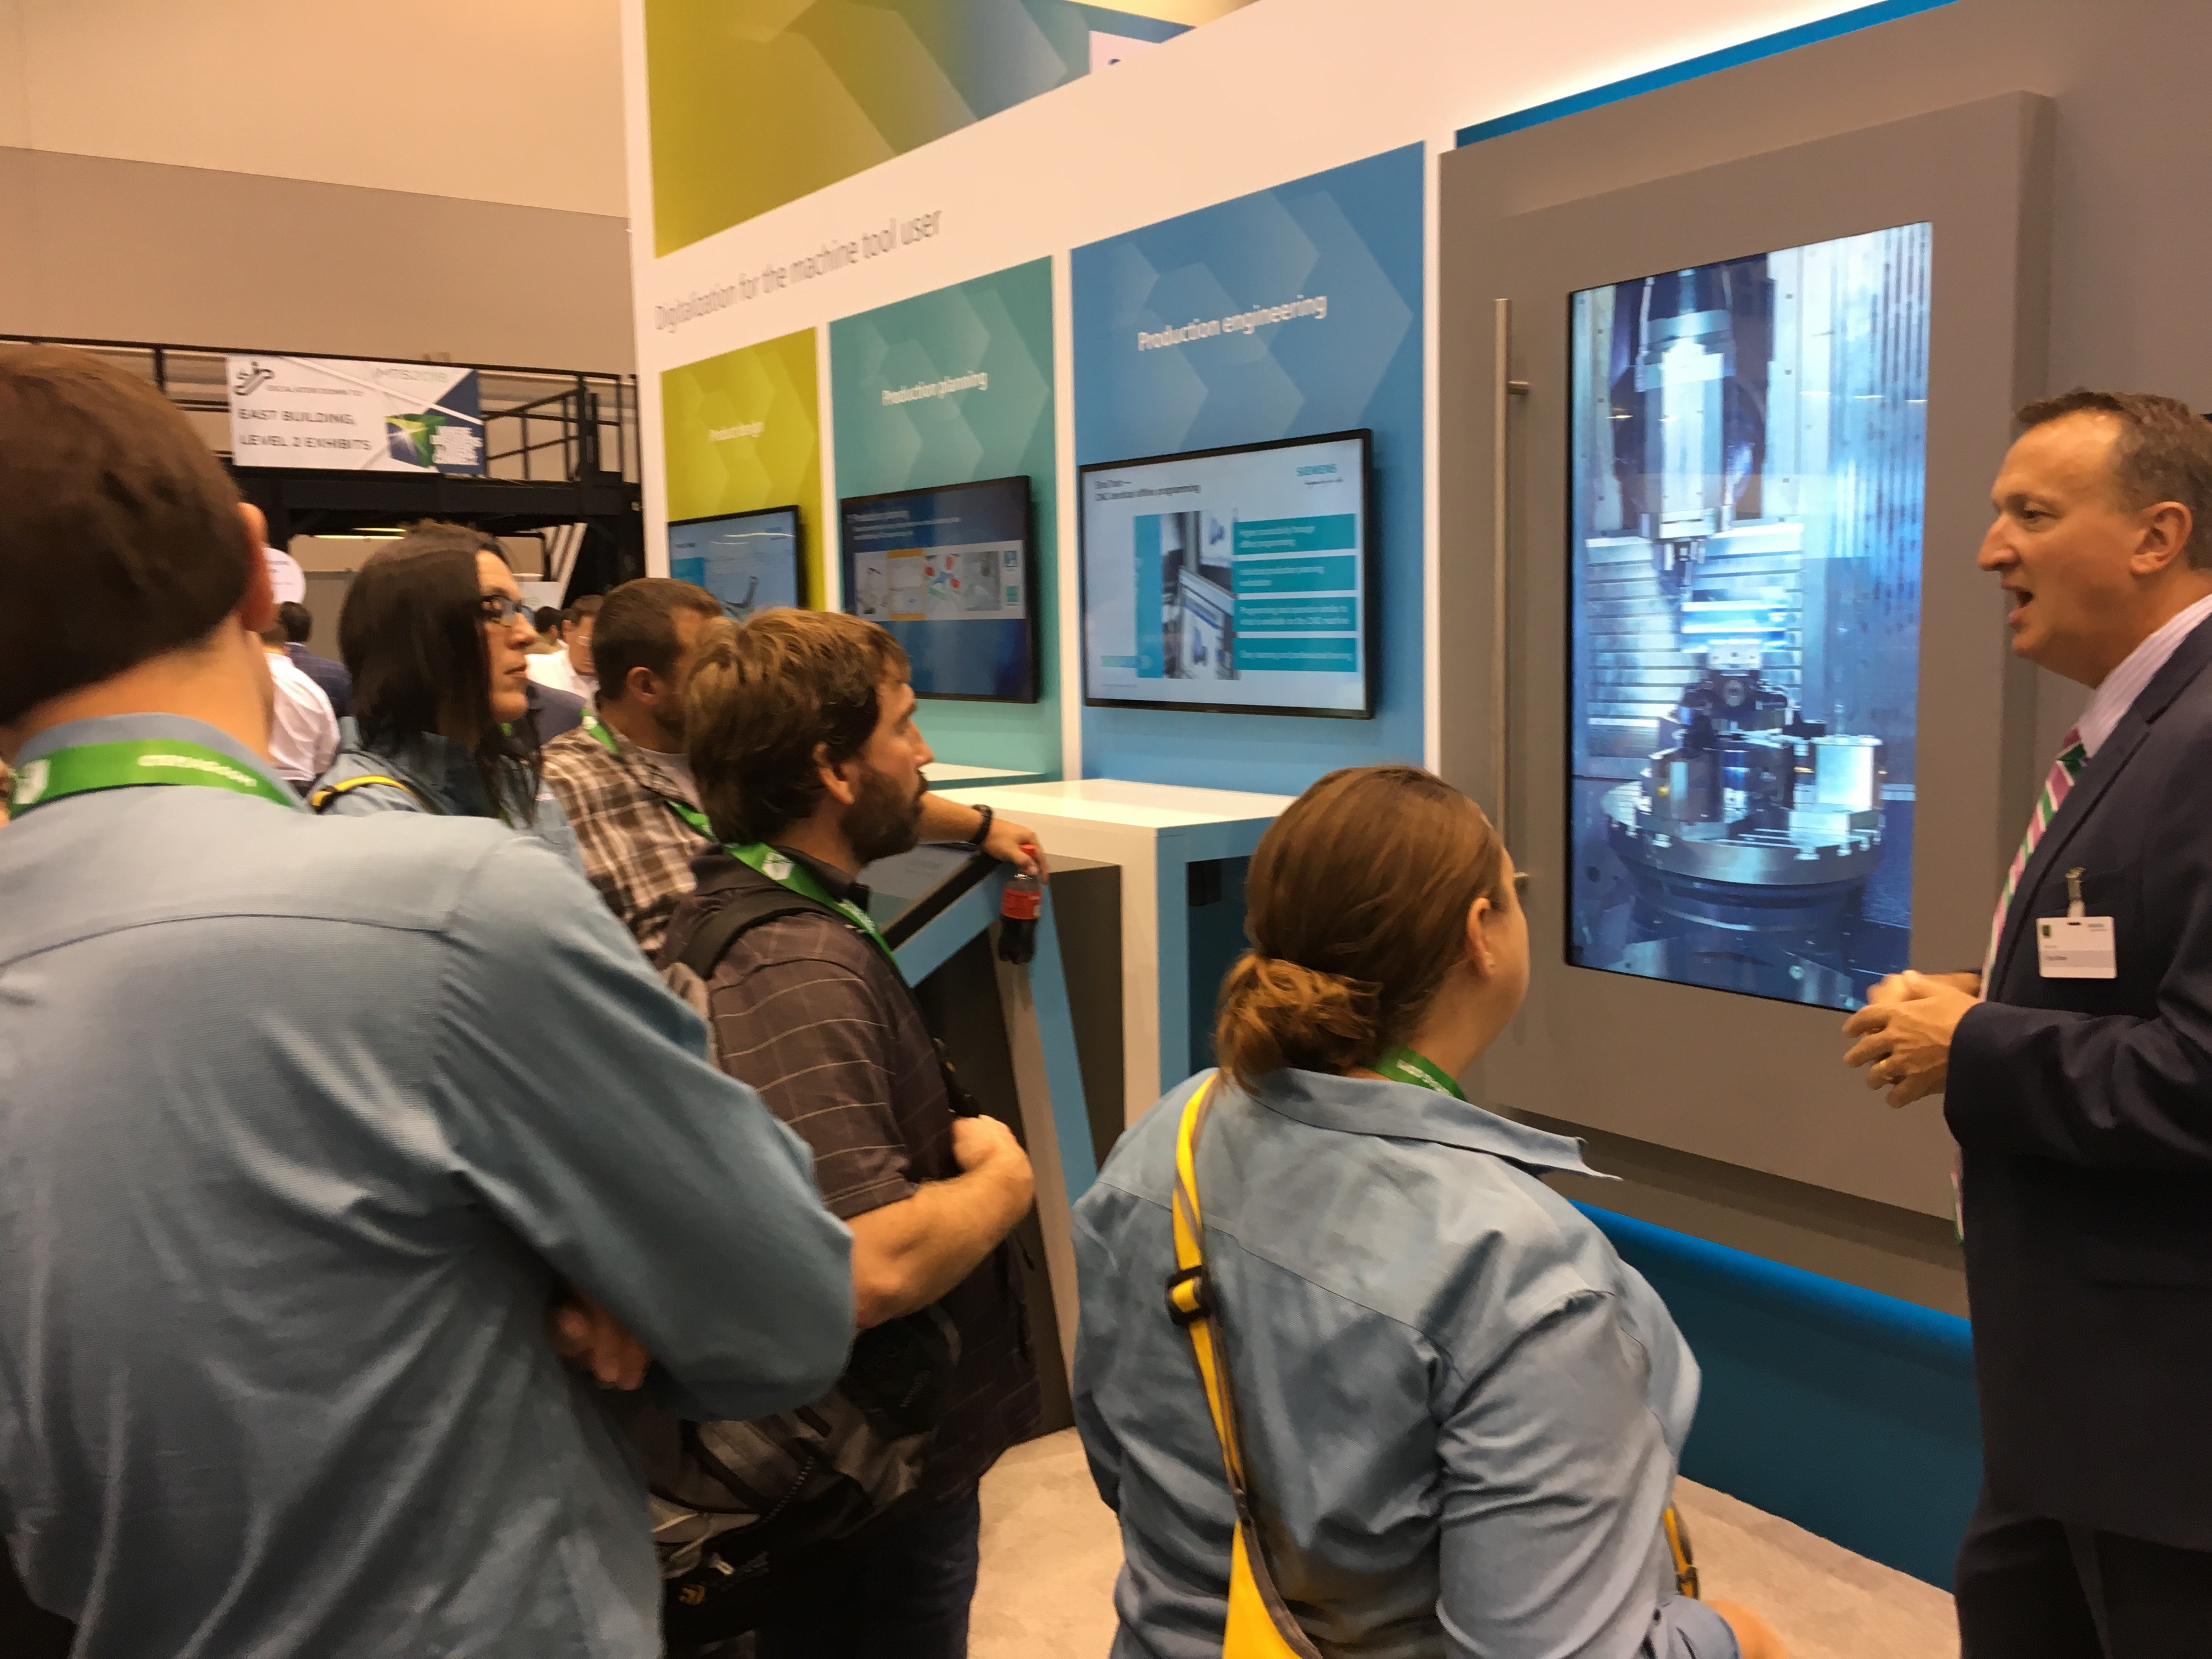 IMTS2018.Boothimage4.jpg